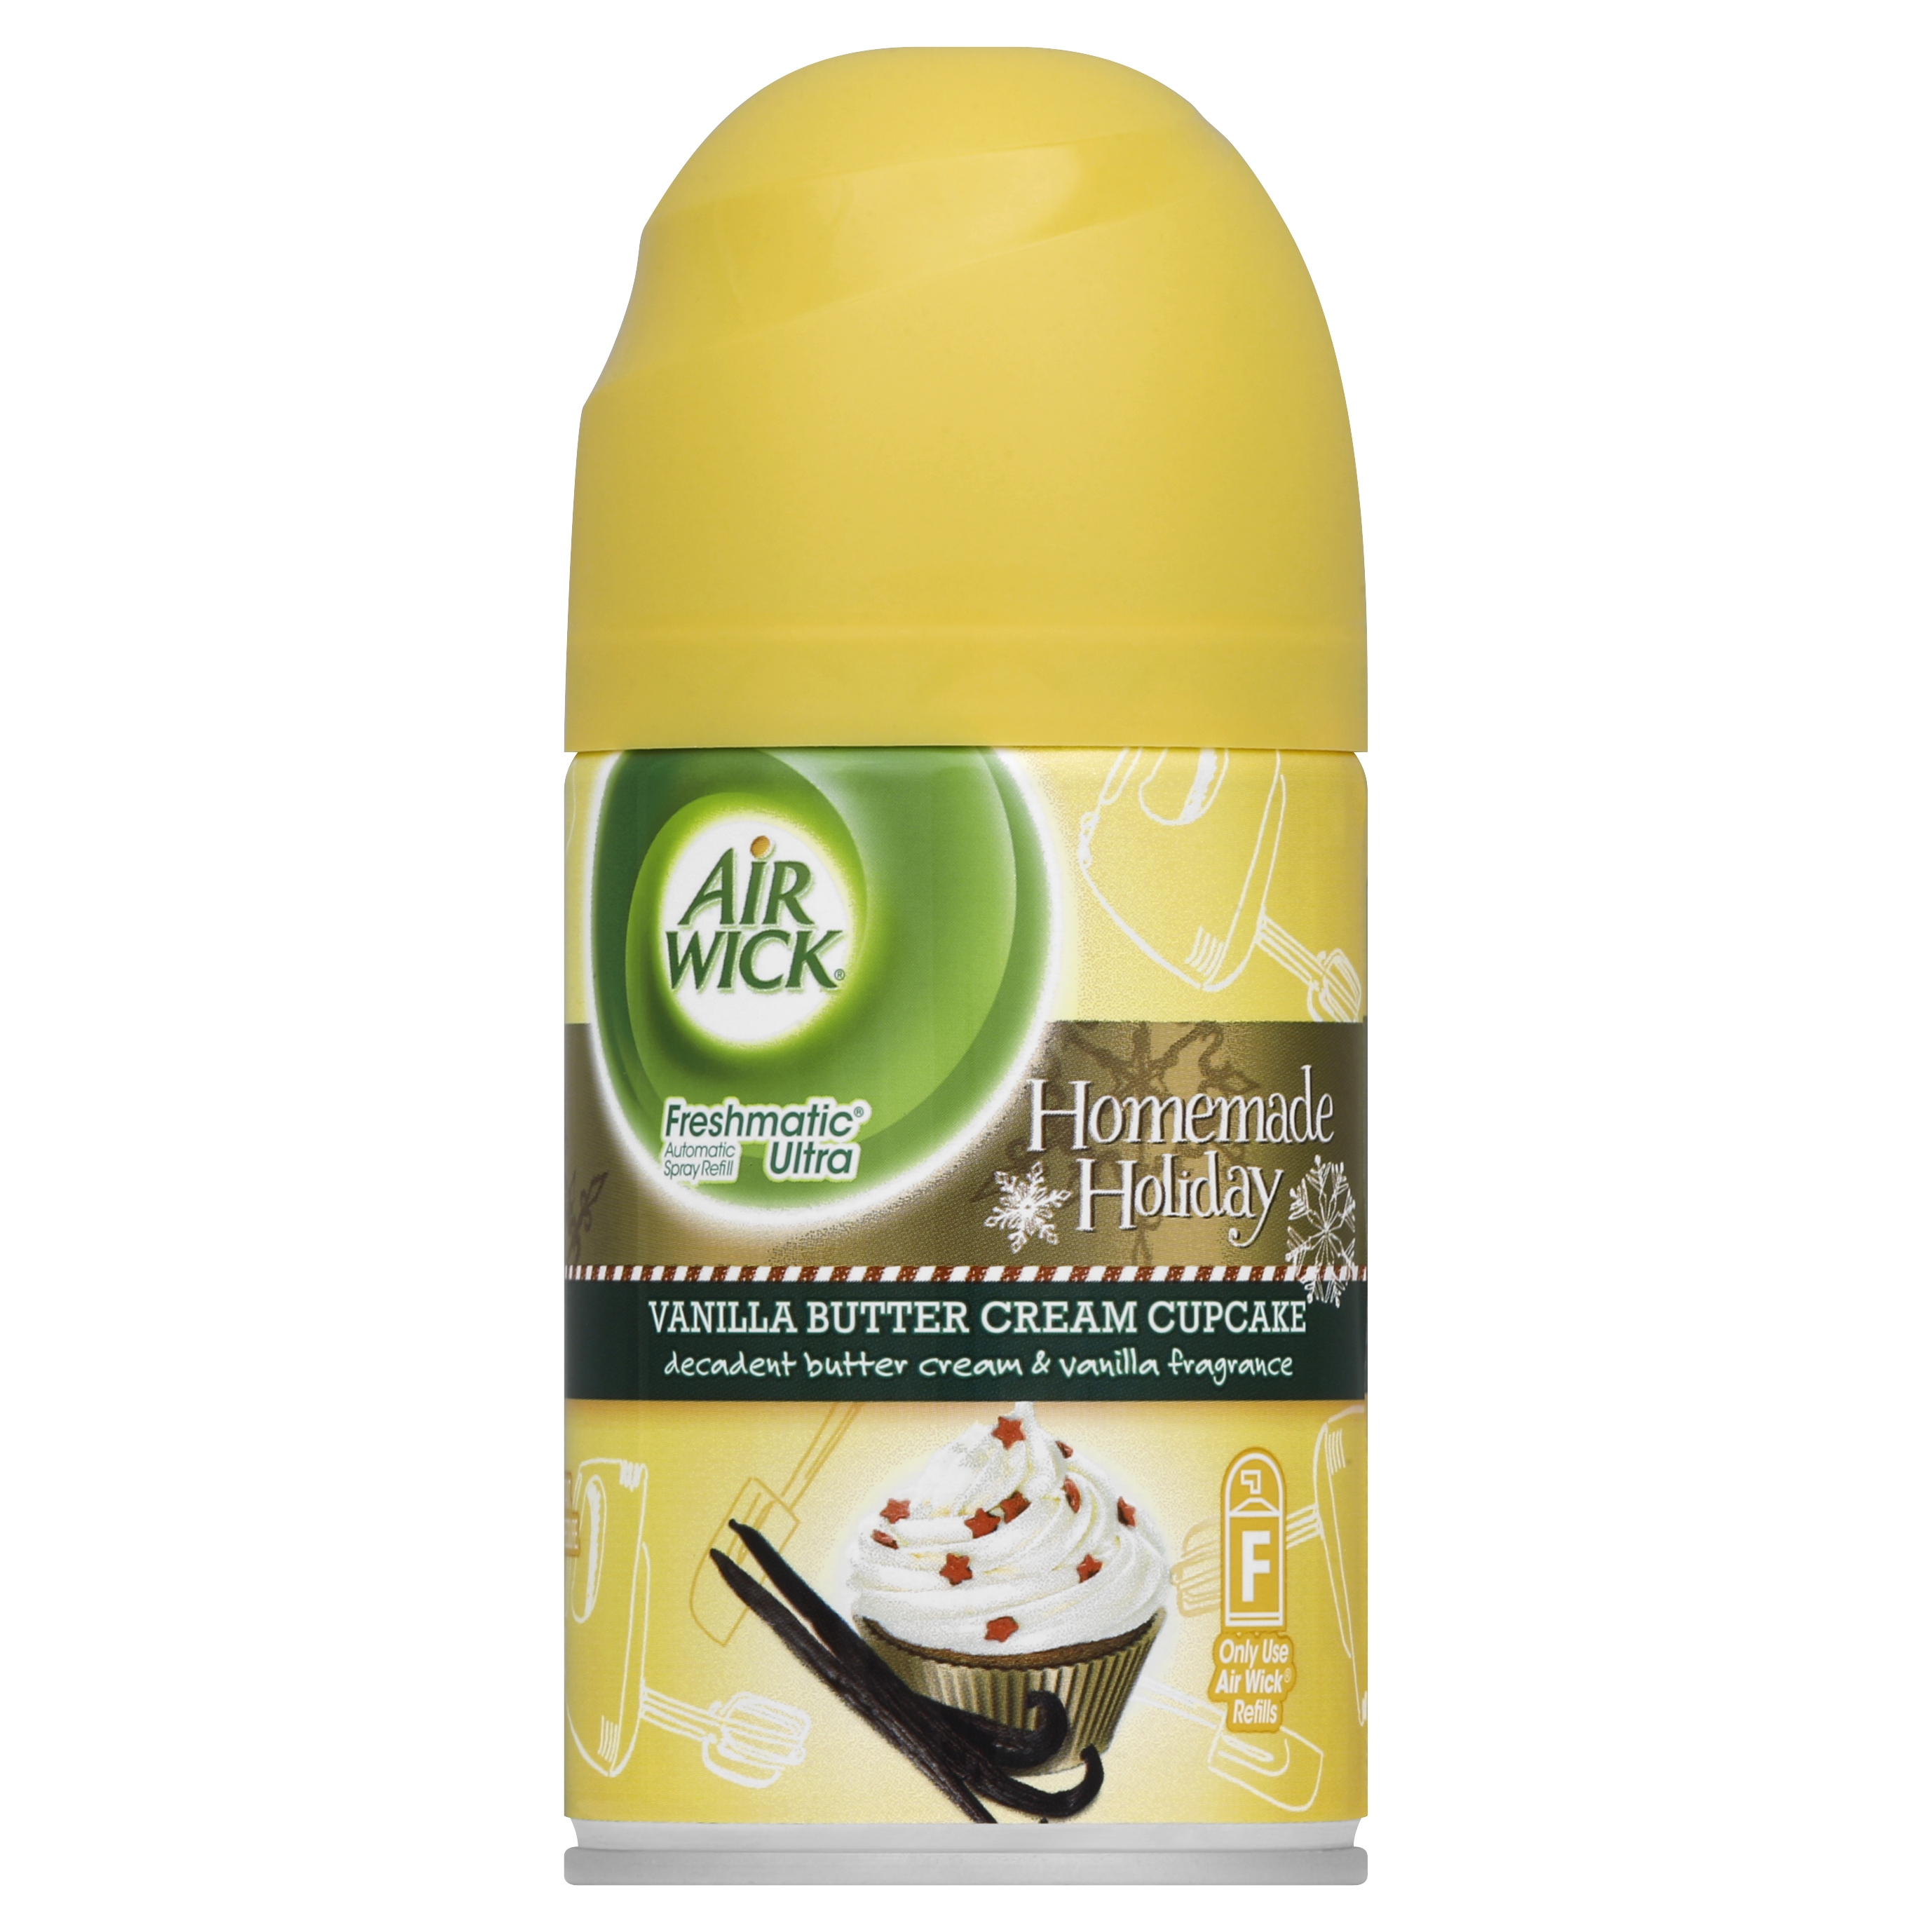 Air Wick Freshmatic Automatic Spray Air Freshener, Vanilla Indulgence Scent, 1 Refill, 6.17 Ounce